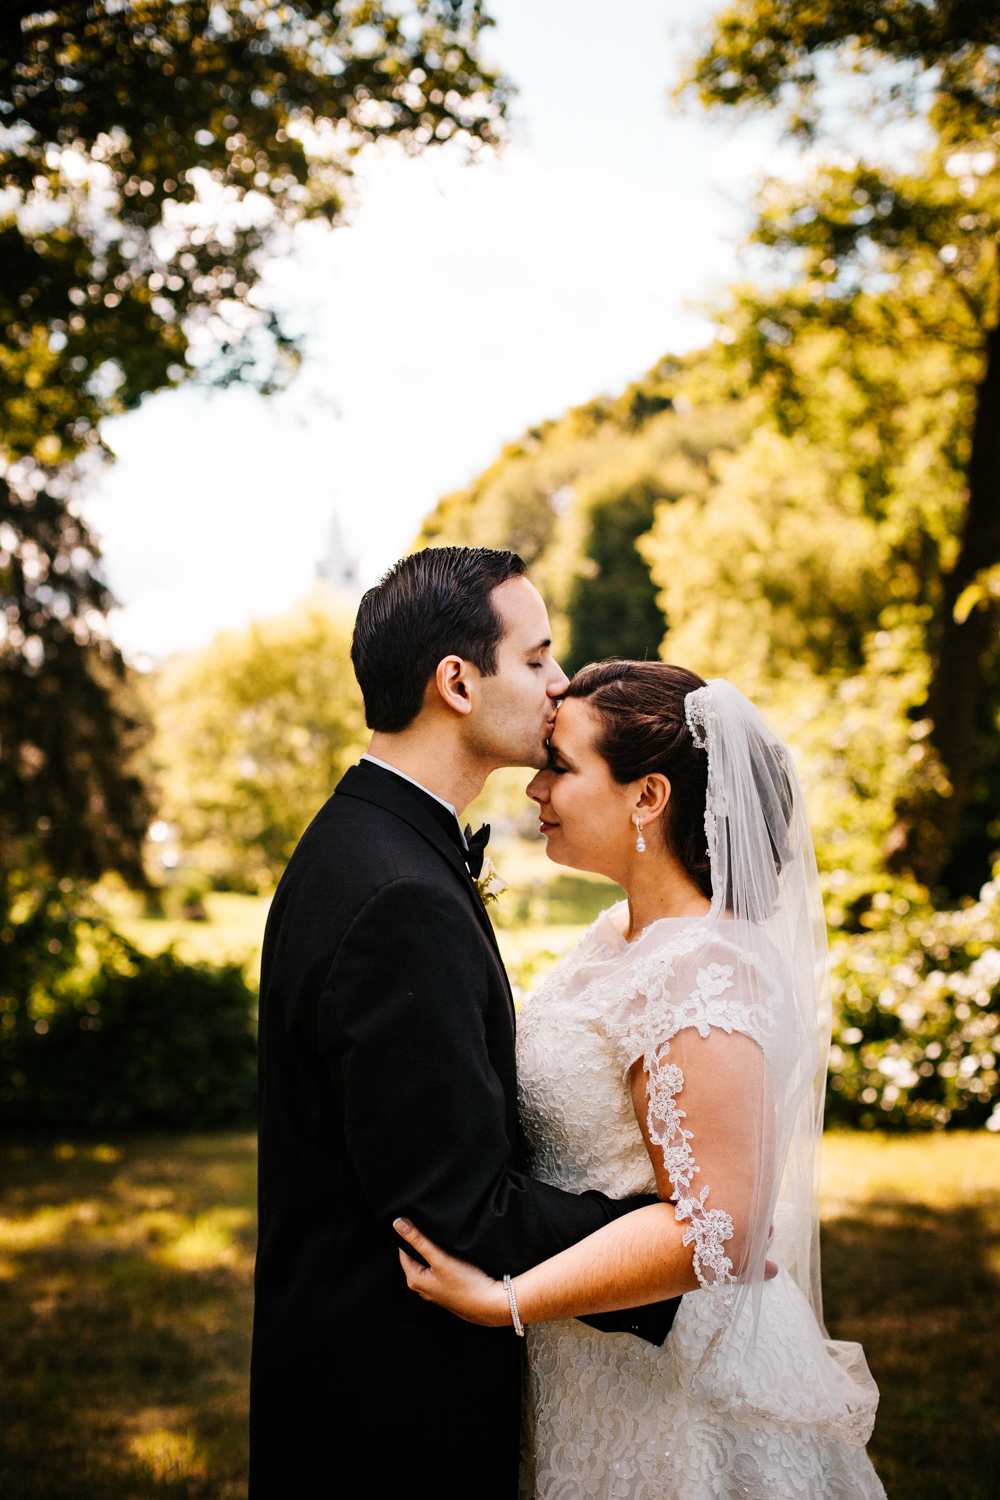 forehead-kiss-bride-groom-pose-wedding-day-outdoors-new-england-boston-wedding-photographer.jpg